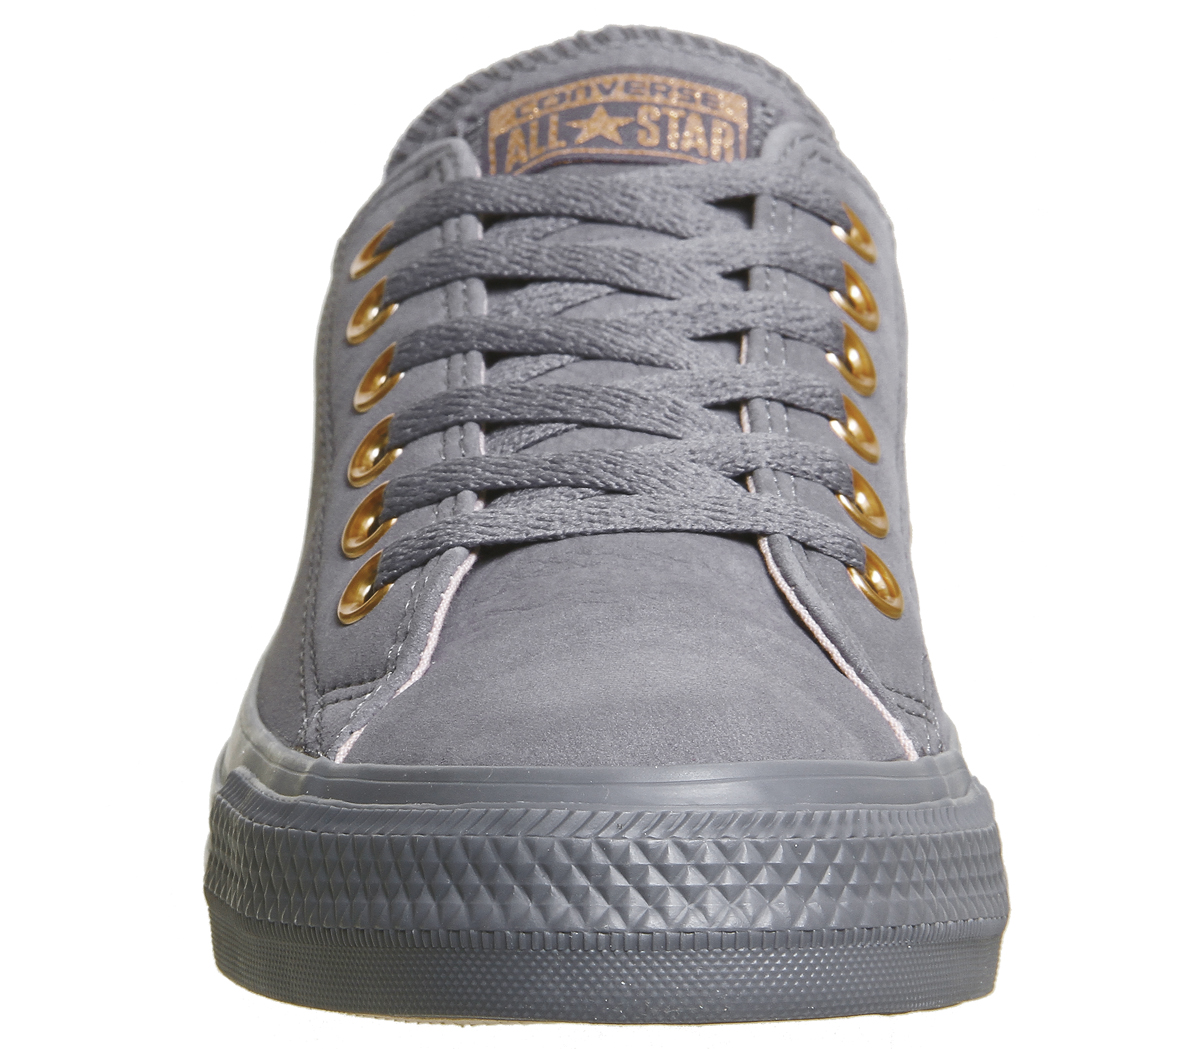 1f5e8c3538b0 Sentinel Womens Converse All Star Low Leather Light Carbon Potpourri  Trainers Shoes